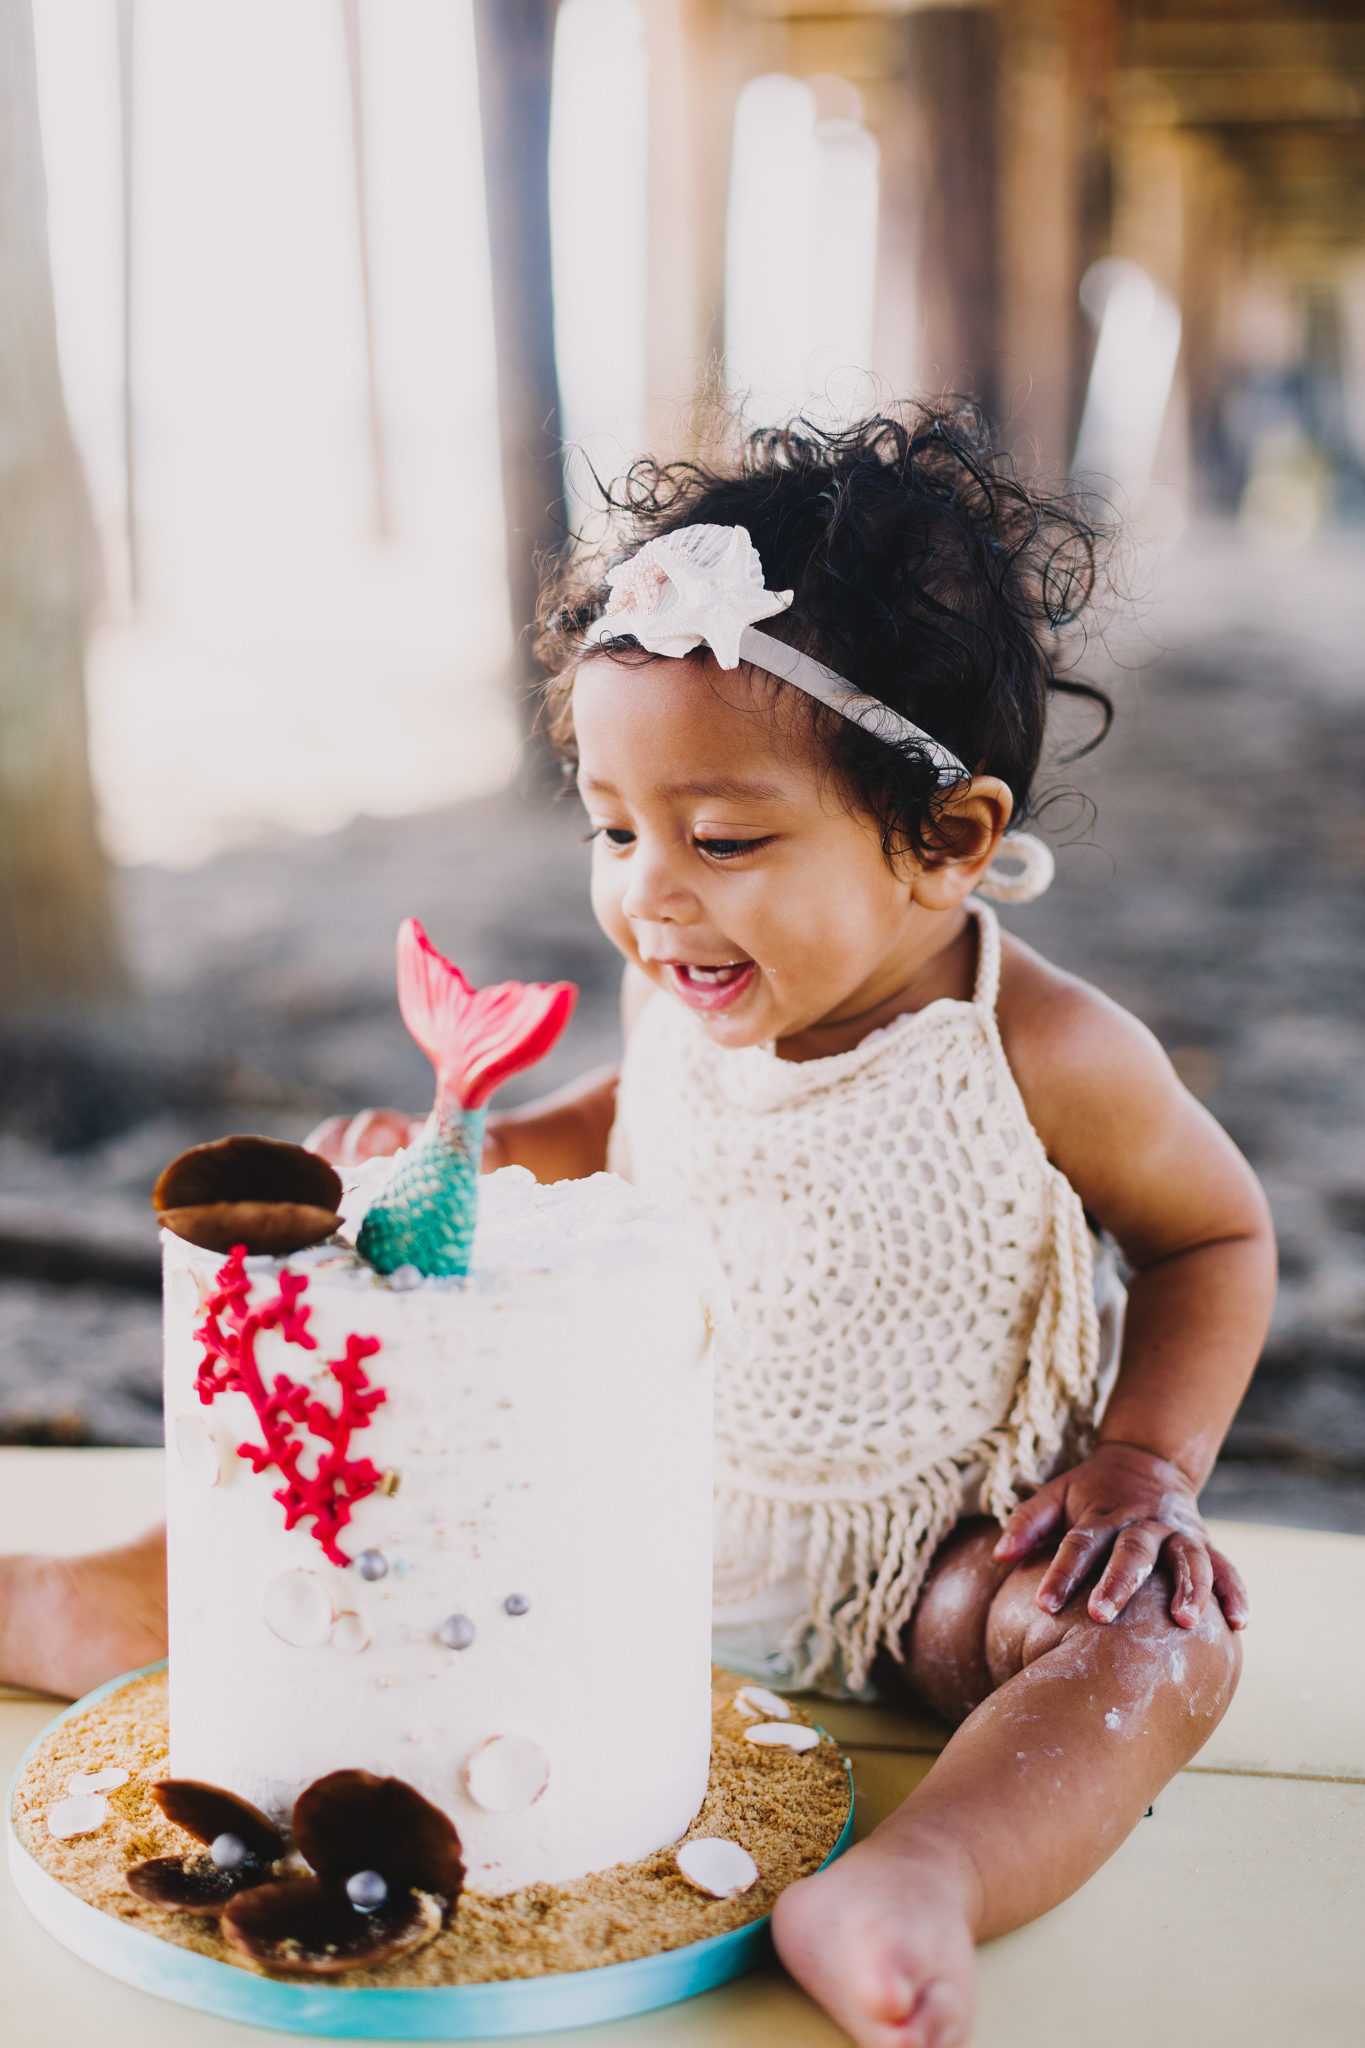 Archer Inspired Photography Cake Smash First Birthday Lifestyle Natural Light Documentary Family Photographer-29.jpg